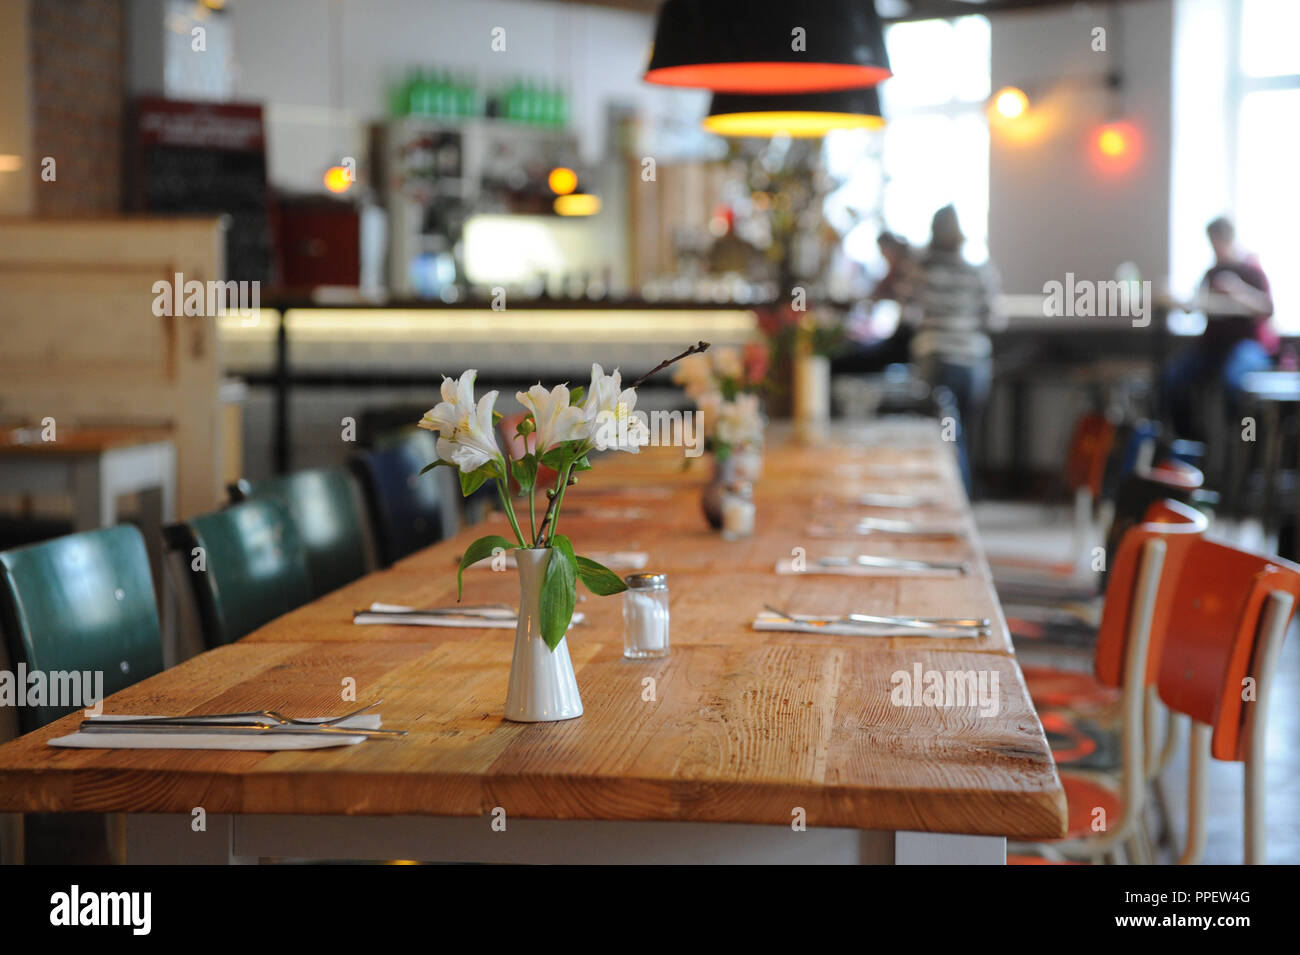 Restaurant 'La Kaz' in the Kazmairstrasse on the Schwanthalerhoehe. - Stock Image